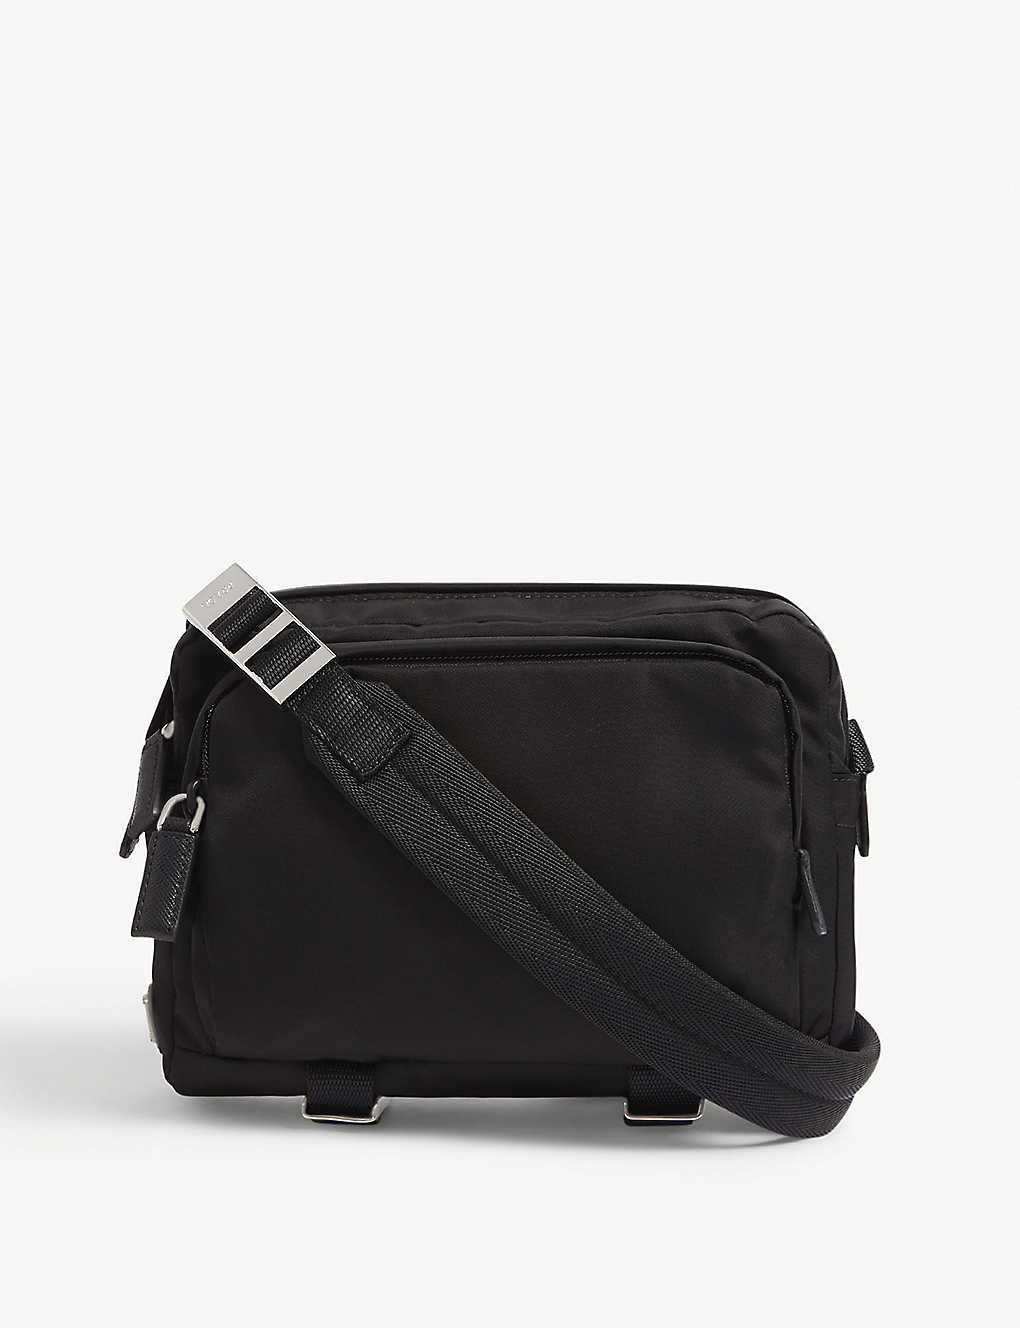 d5e8860544f4 PRADA - Tessuto Montagna nylon camera bag | Selfridges.com